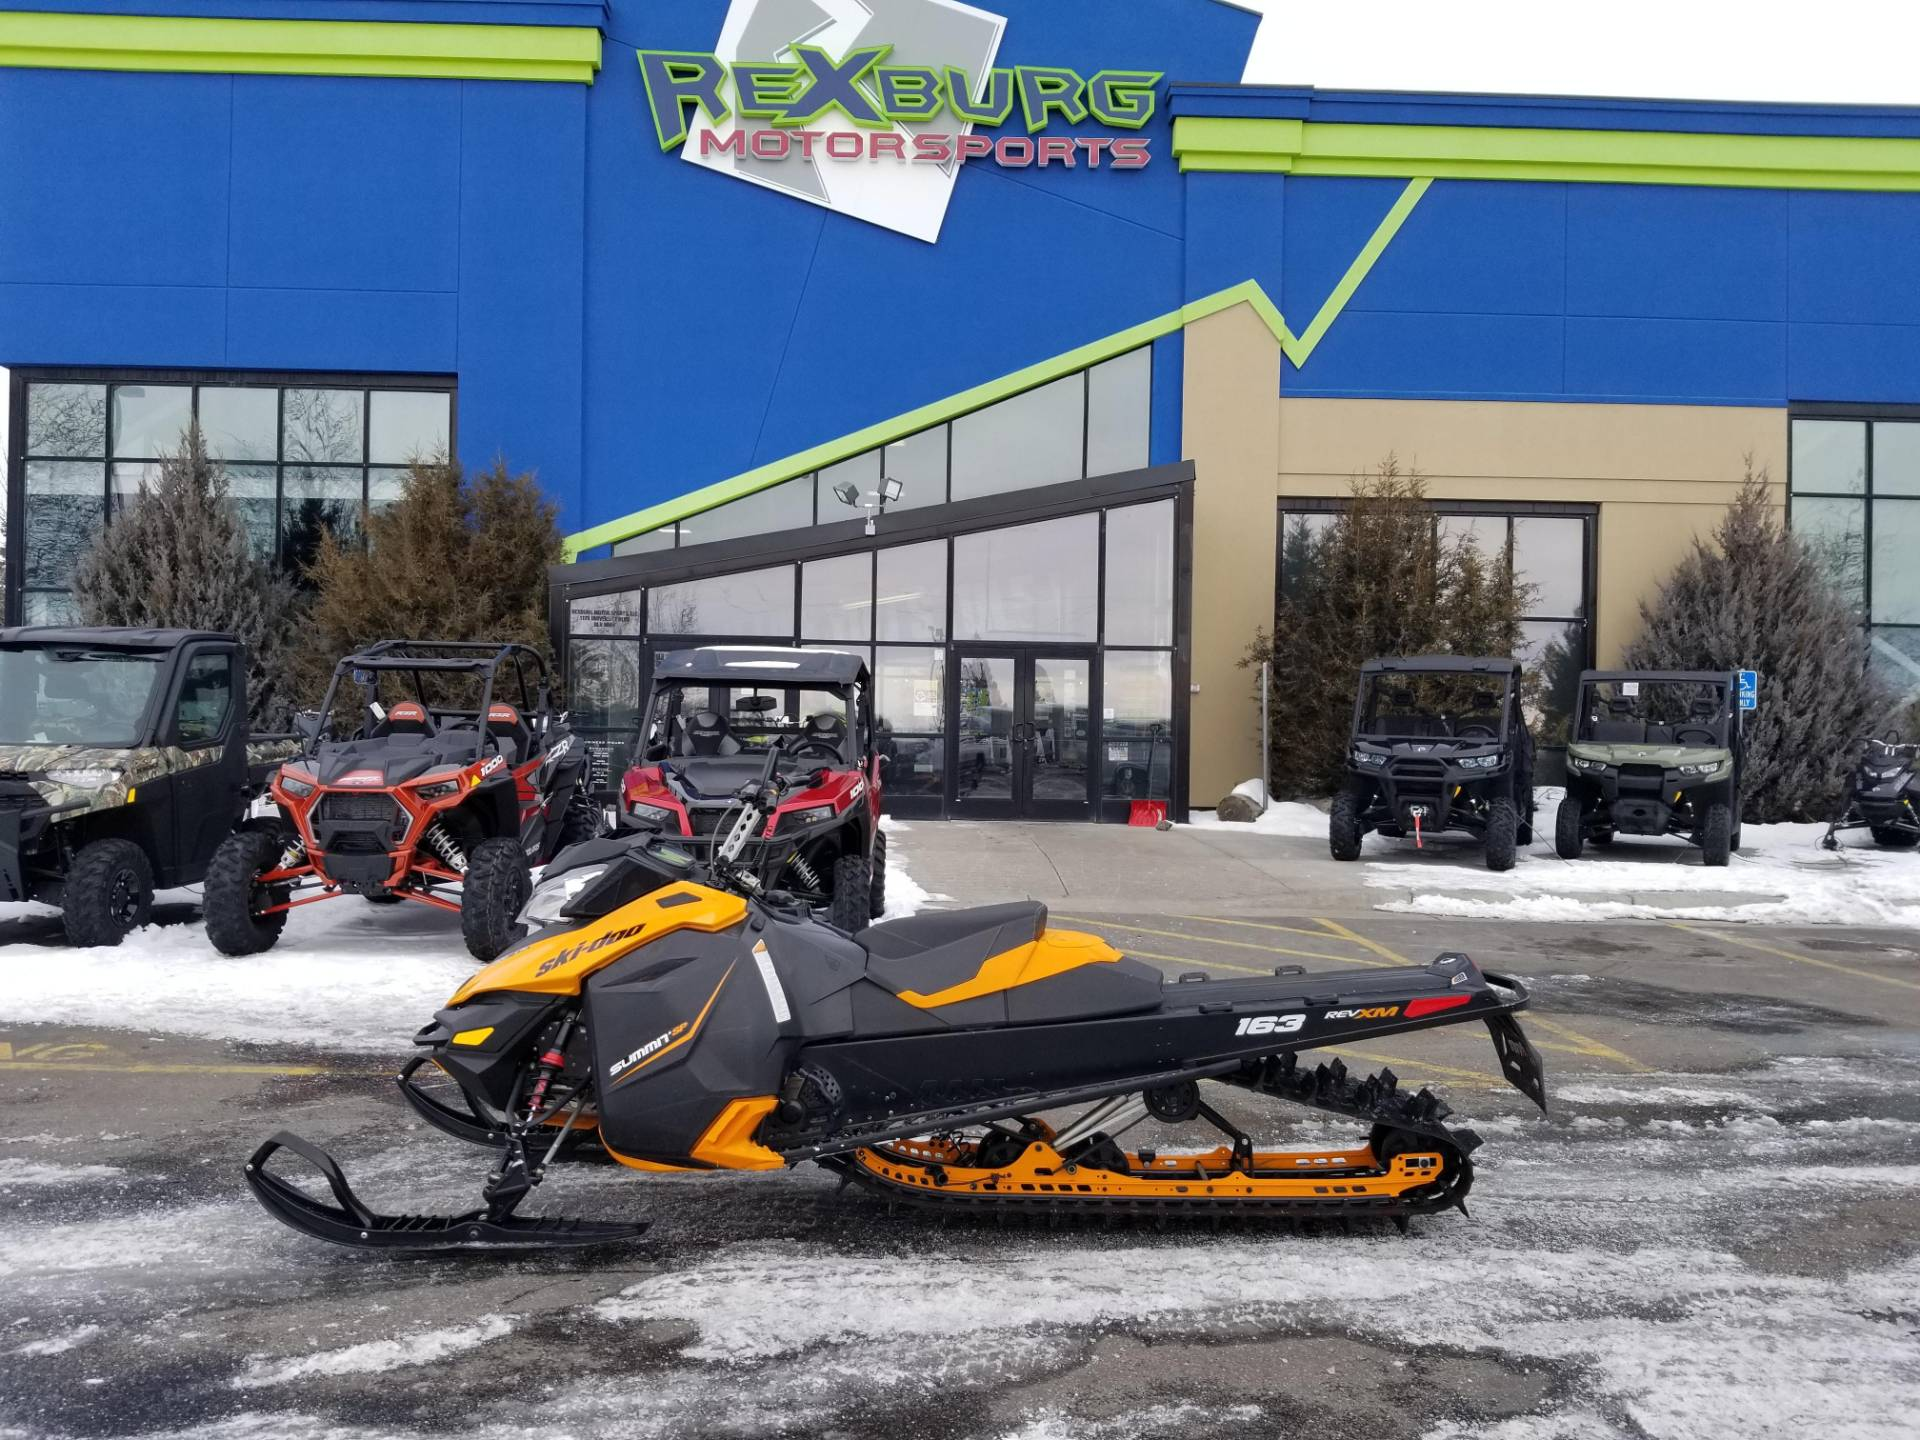 2013 Ski-Doo Summit® SP E-TEC 800R 163 in Rexburg, Idaho - Photo 1